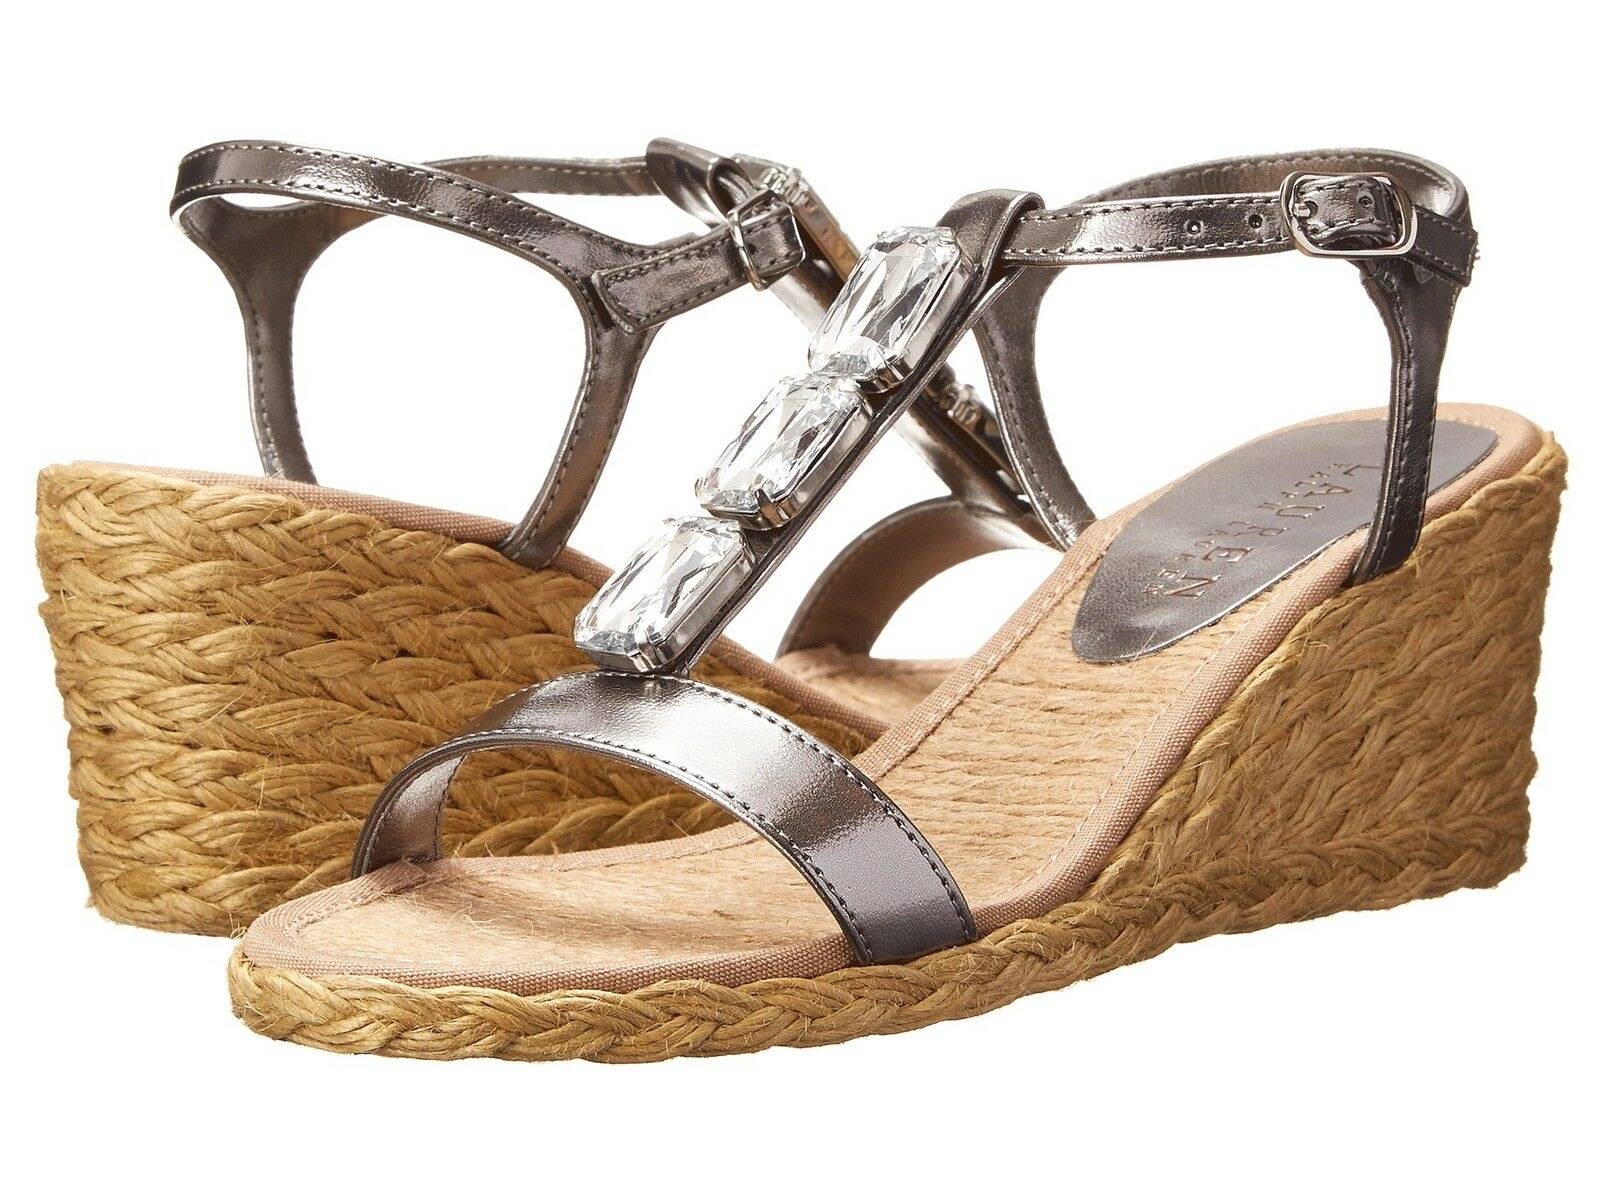 RALPH LAUREN CORALA NEU SILVER Damenschuhe WEDGES SANDALS Schuhe MULTISIZES AS